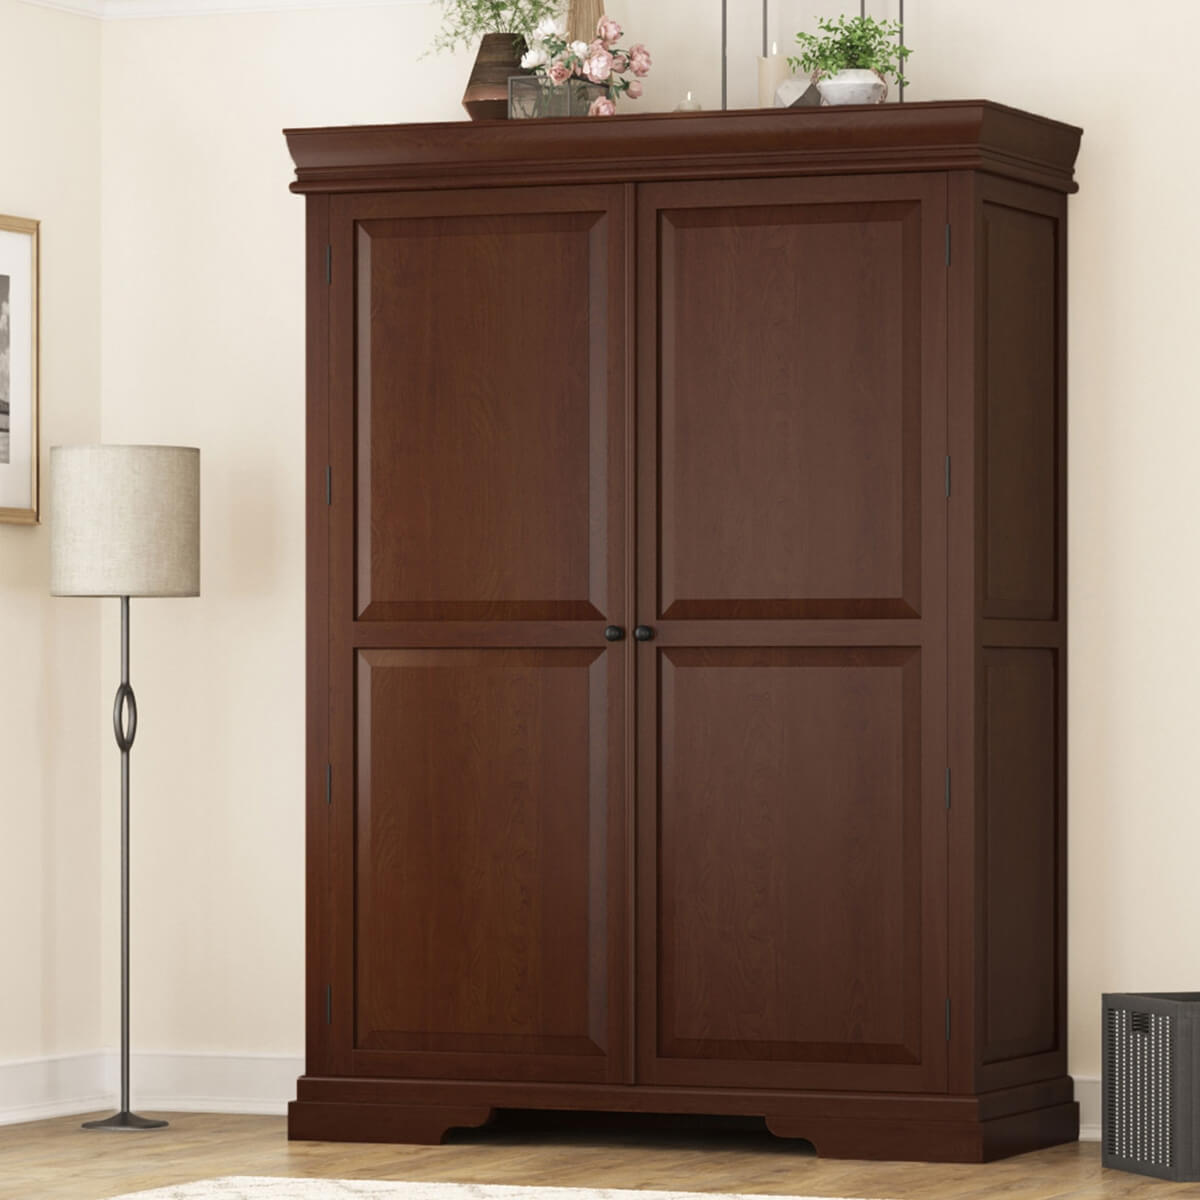 Dimension Armoire Accoville Mahogany Wood Large Bedroom Clothing Armoire With Shelves